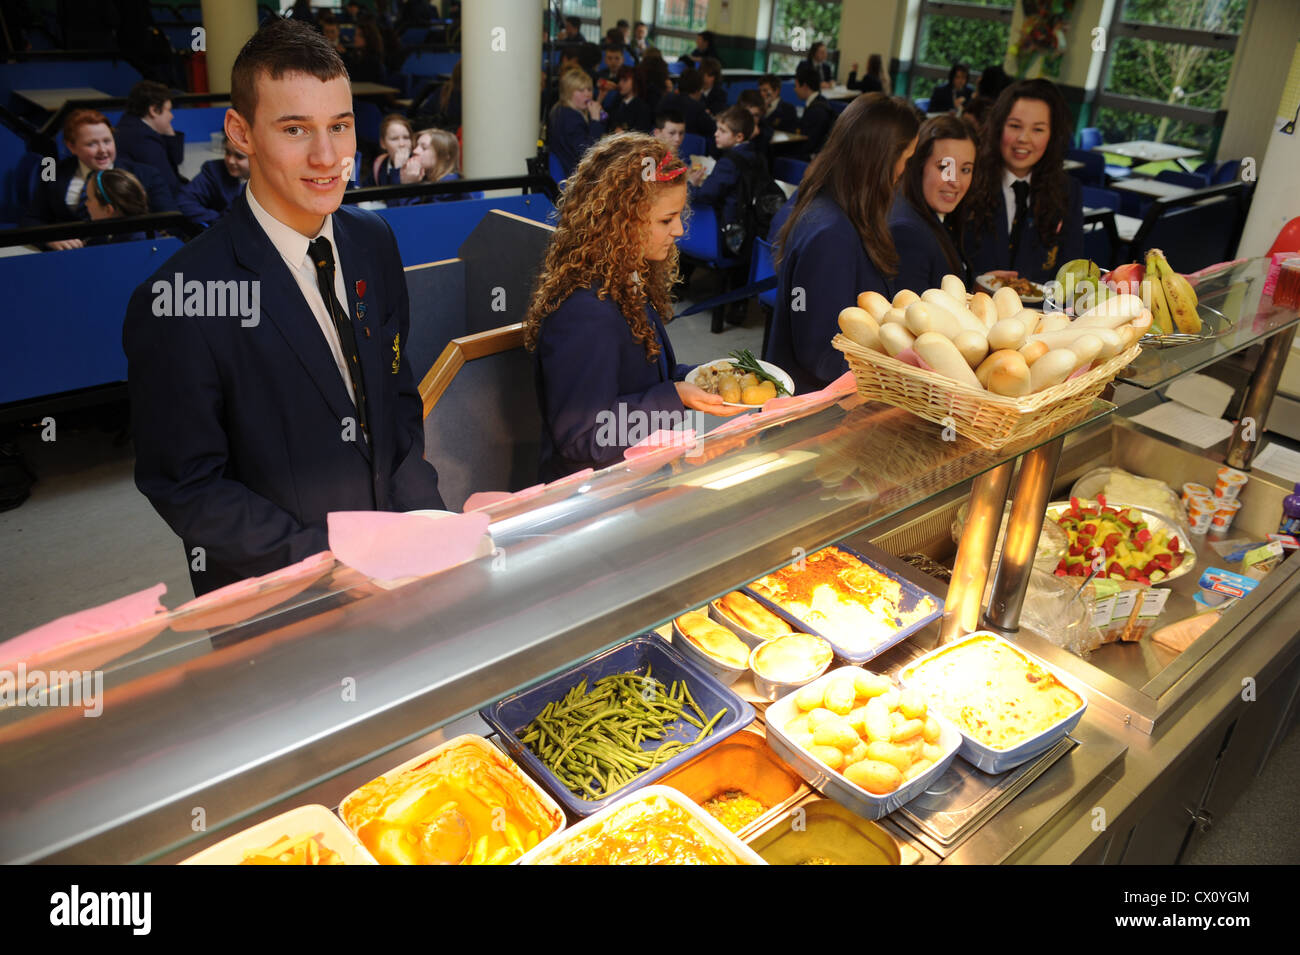 complaint about the food sold in the school canteen 209 schools join healthy meal programme but rising prices a concern among parents more than half of the schools here are now serving healthier meals with less fat, sugar and salt, and each with a serving of fruit but even as parents applaud the move, the prices of food in school canteens have.